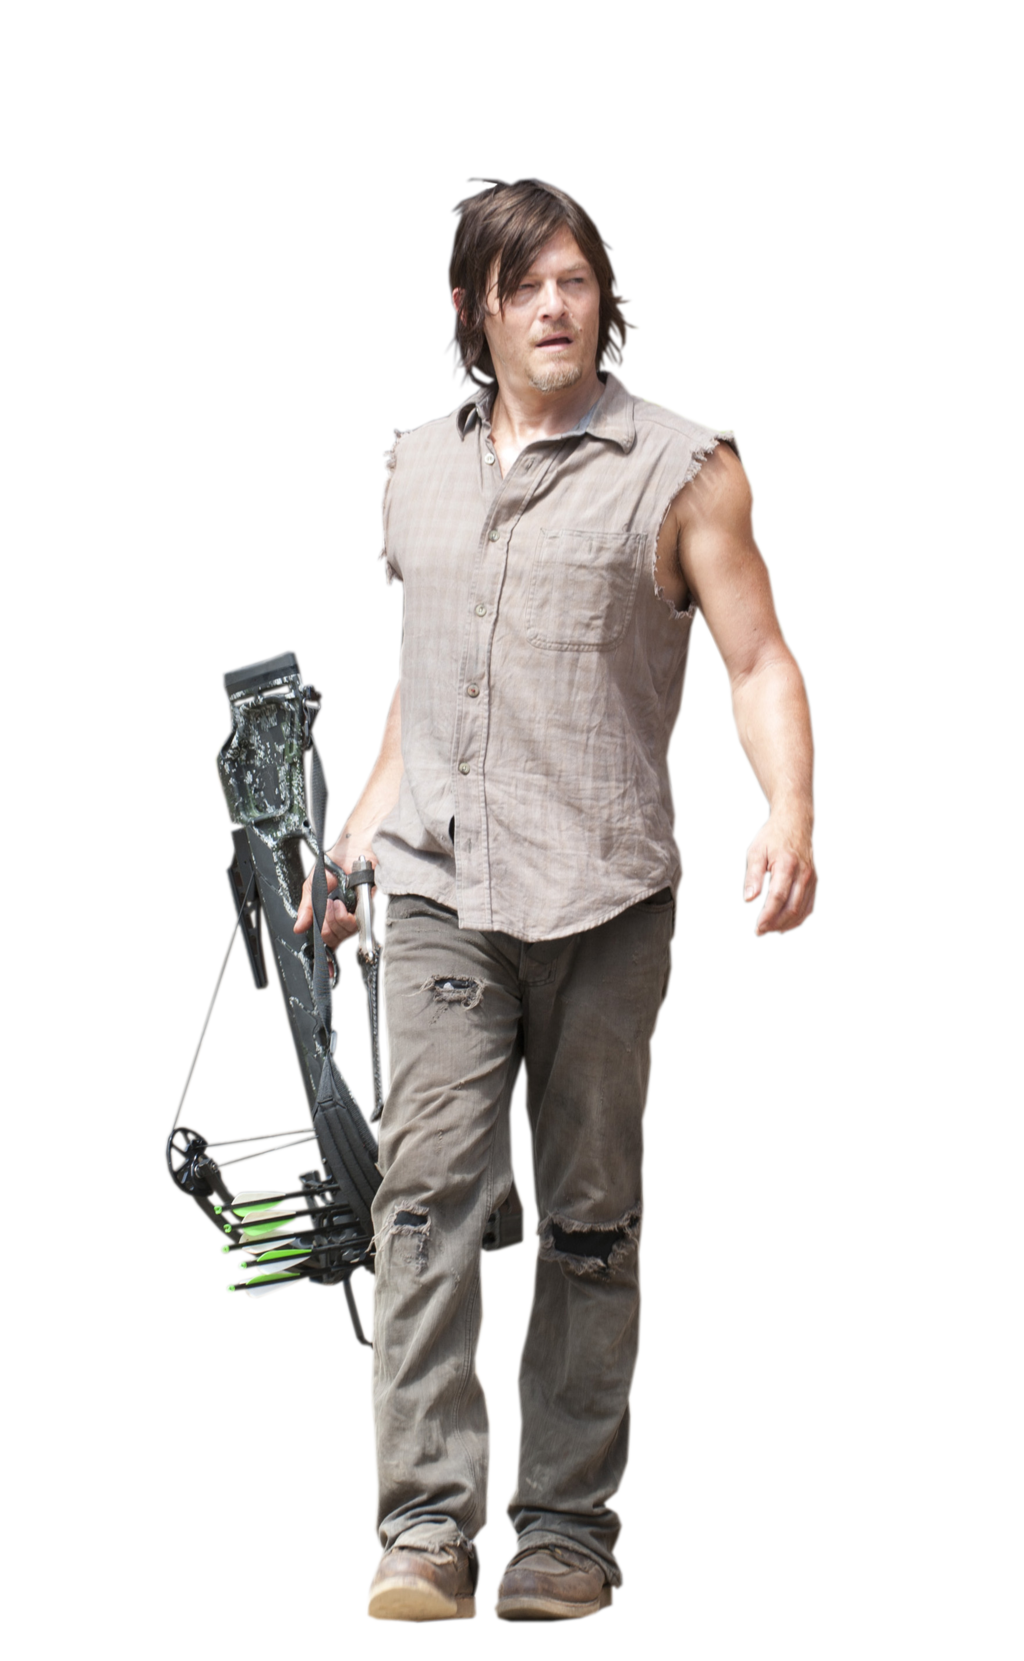 Daryl Render The Walking Dead By Twdmeuvicio On Deviantart The Walking Dead Daryl Dixon Walking Dead Daryl